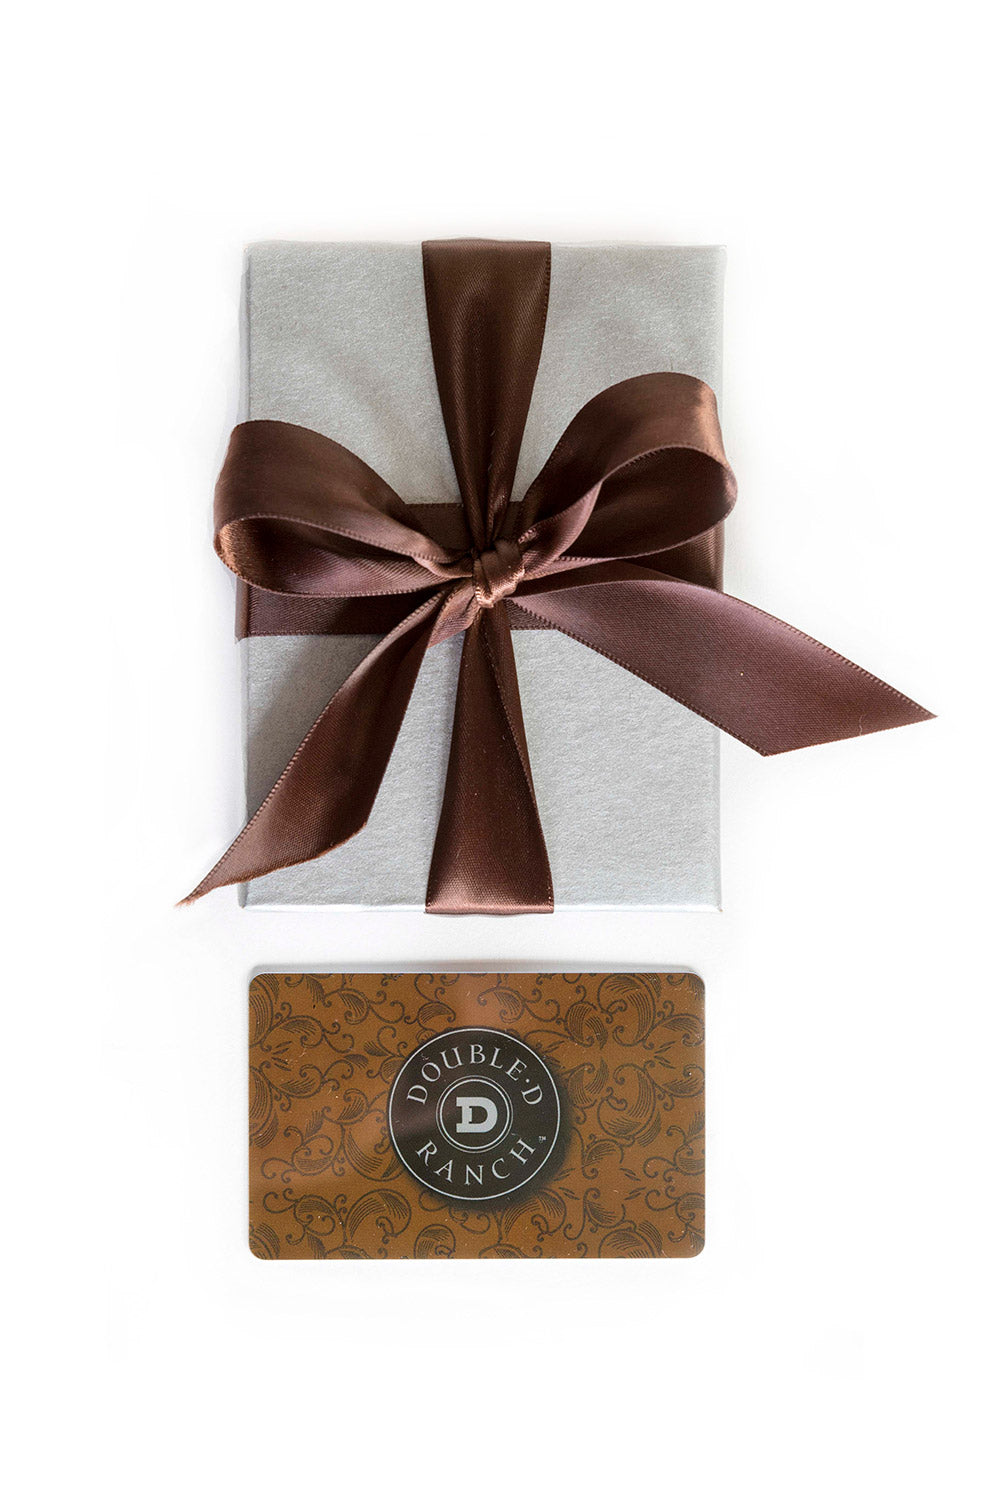 Double D Ranch Gift Card